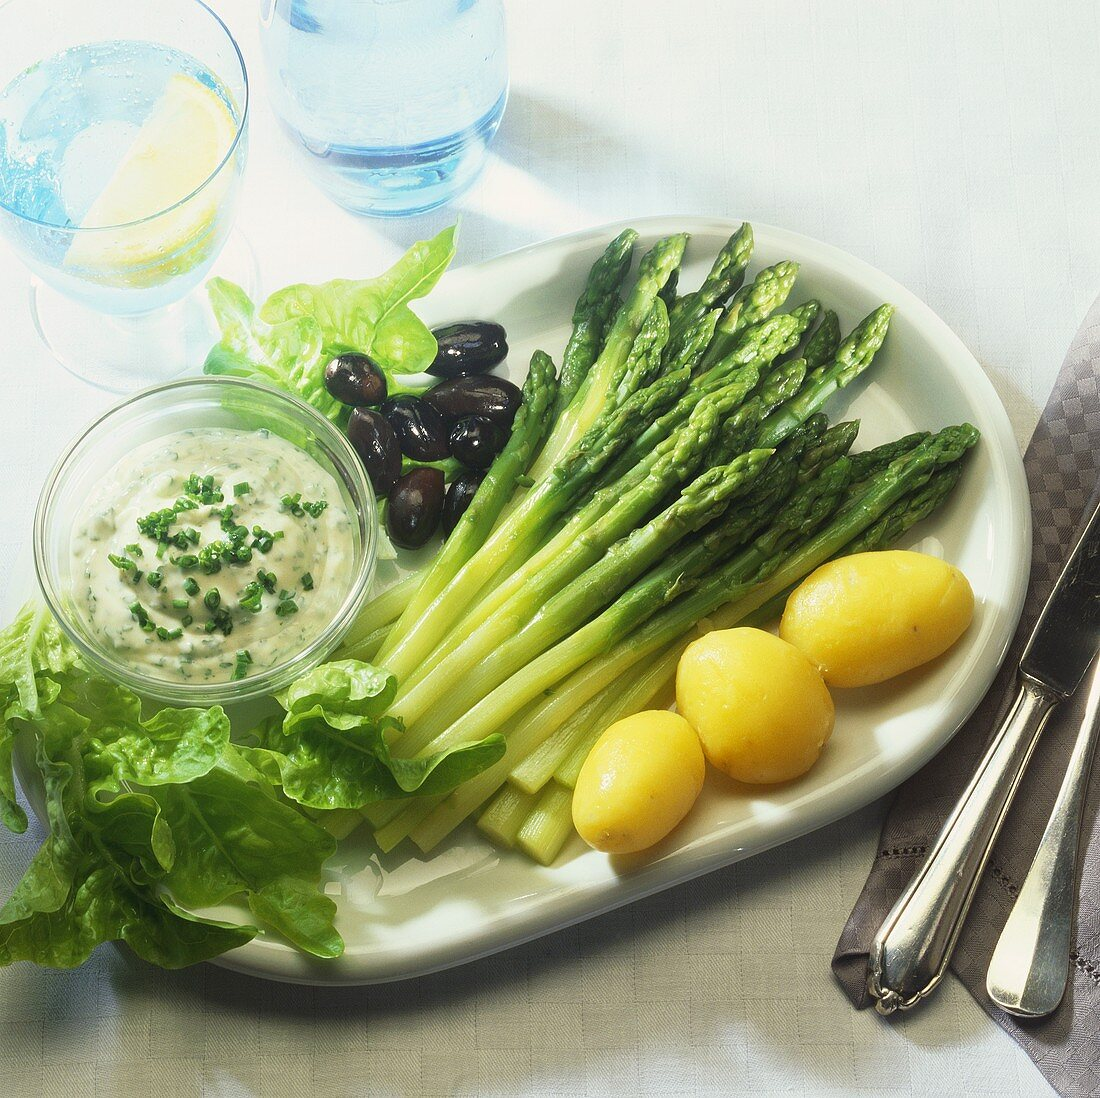 Green asparagus with potatoes, olives and garlic cream